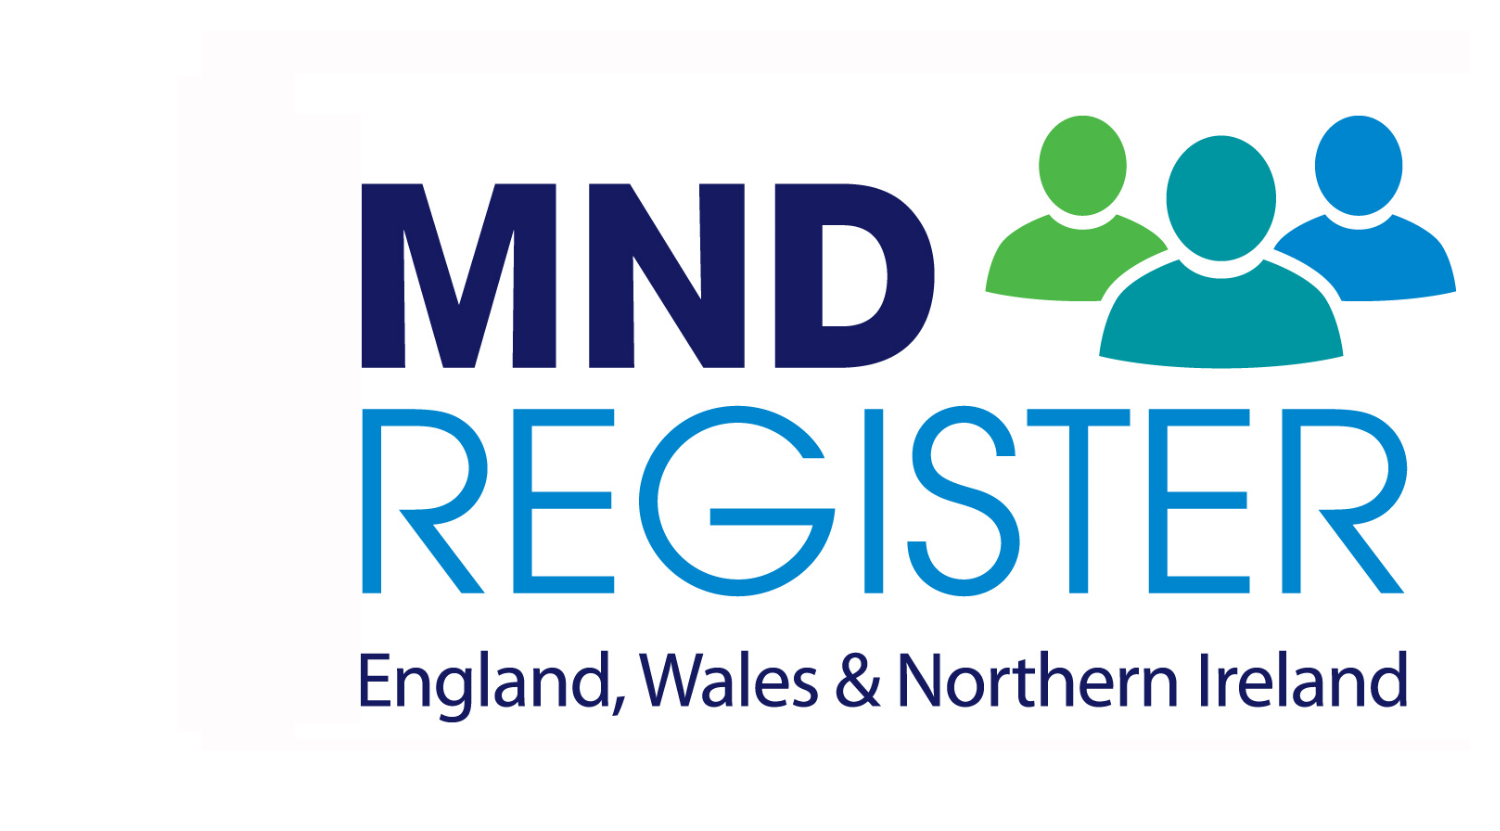 Setting up the MND Register for England, Wales and Northern Ireland